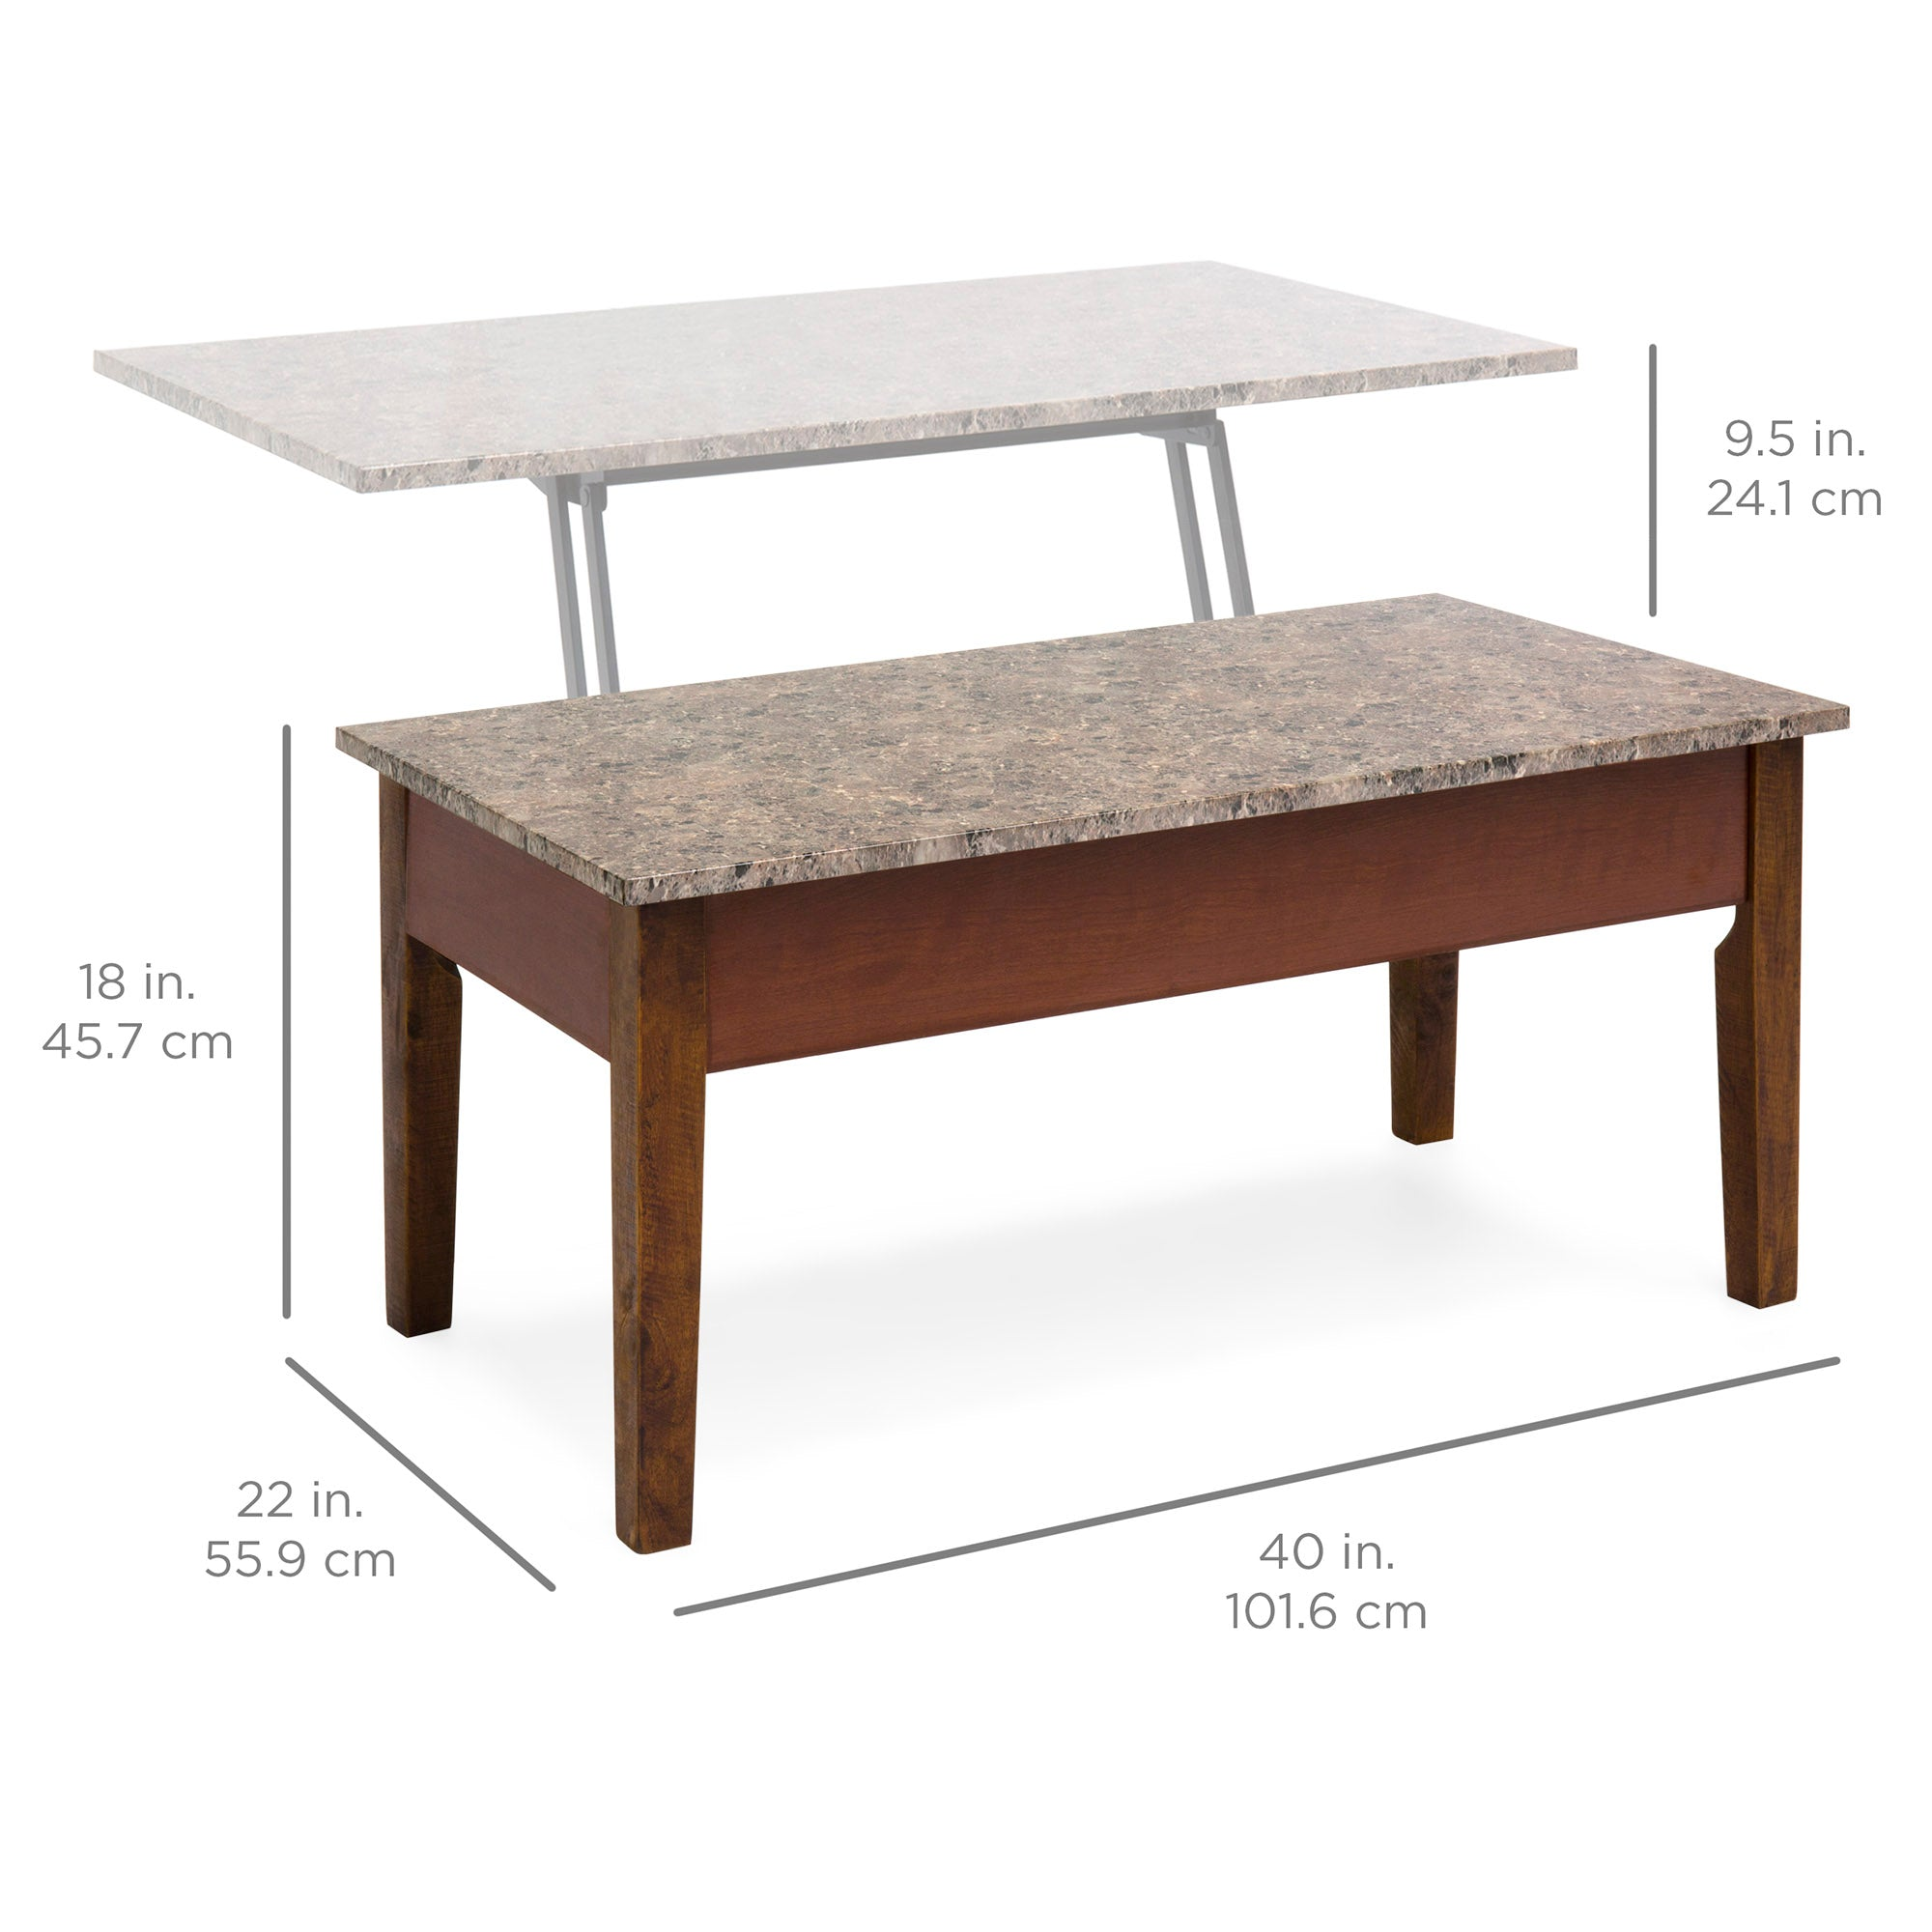 Marble lift top coffee table brown best choice products for Marble top coffee table